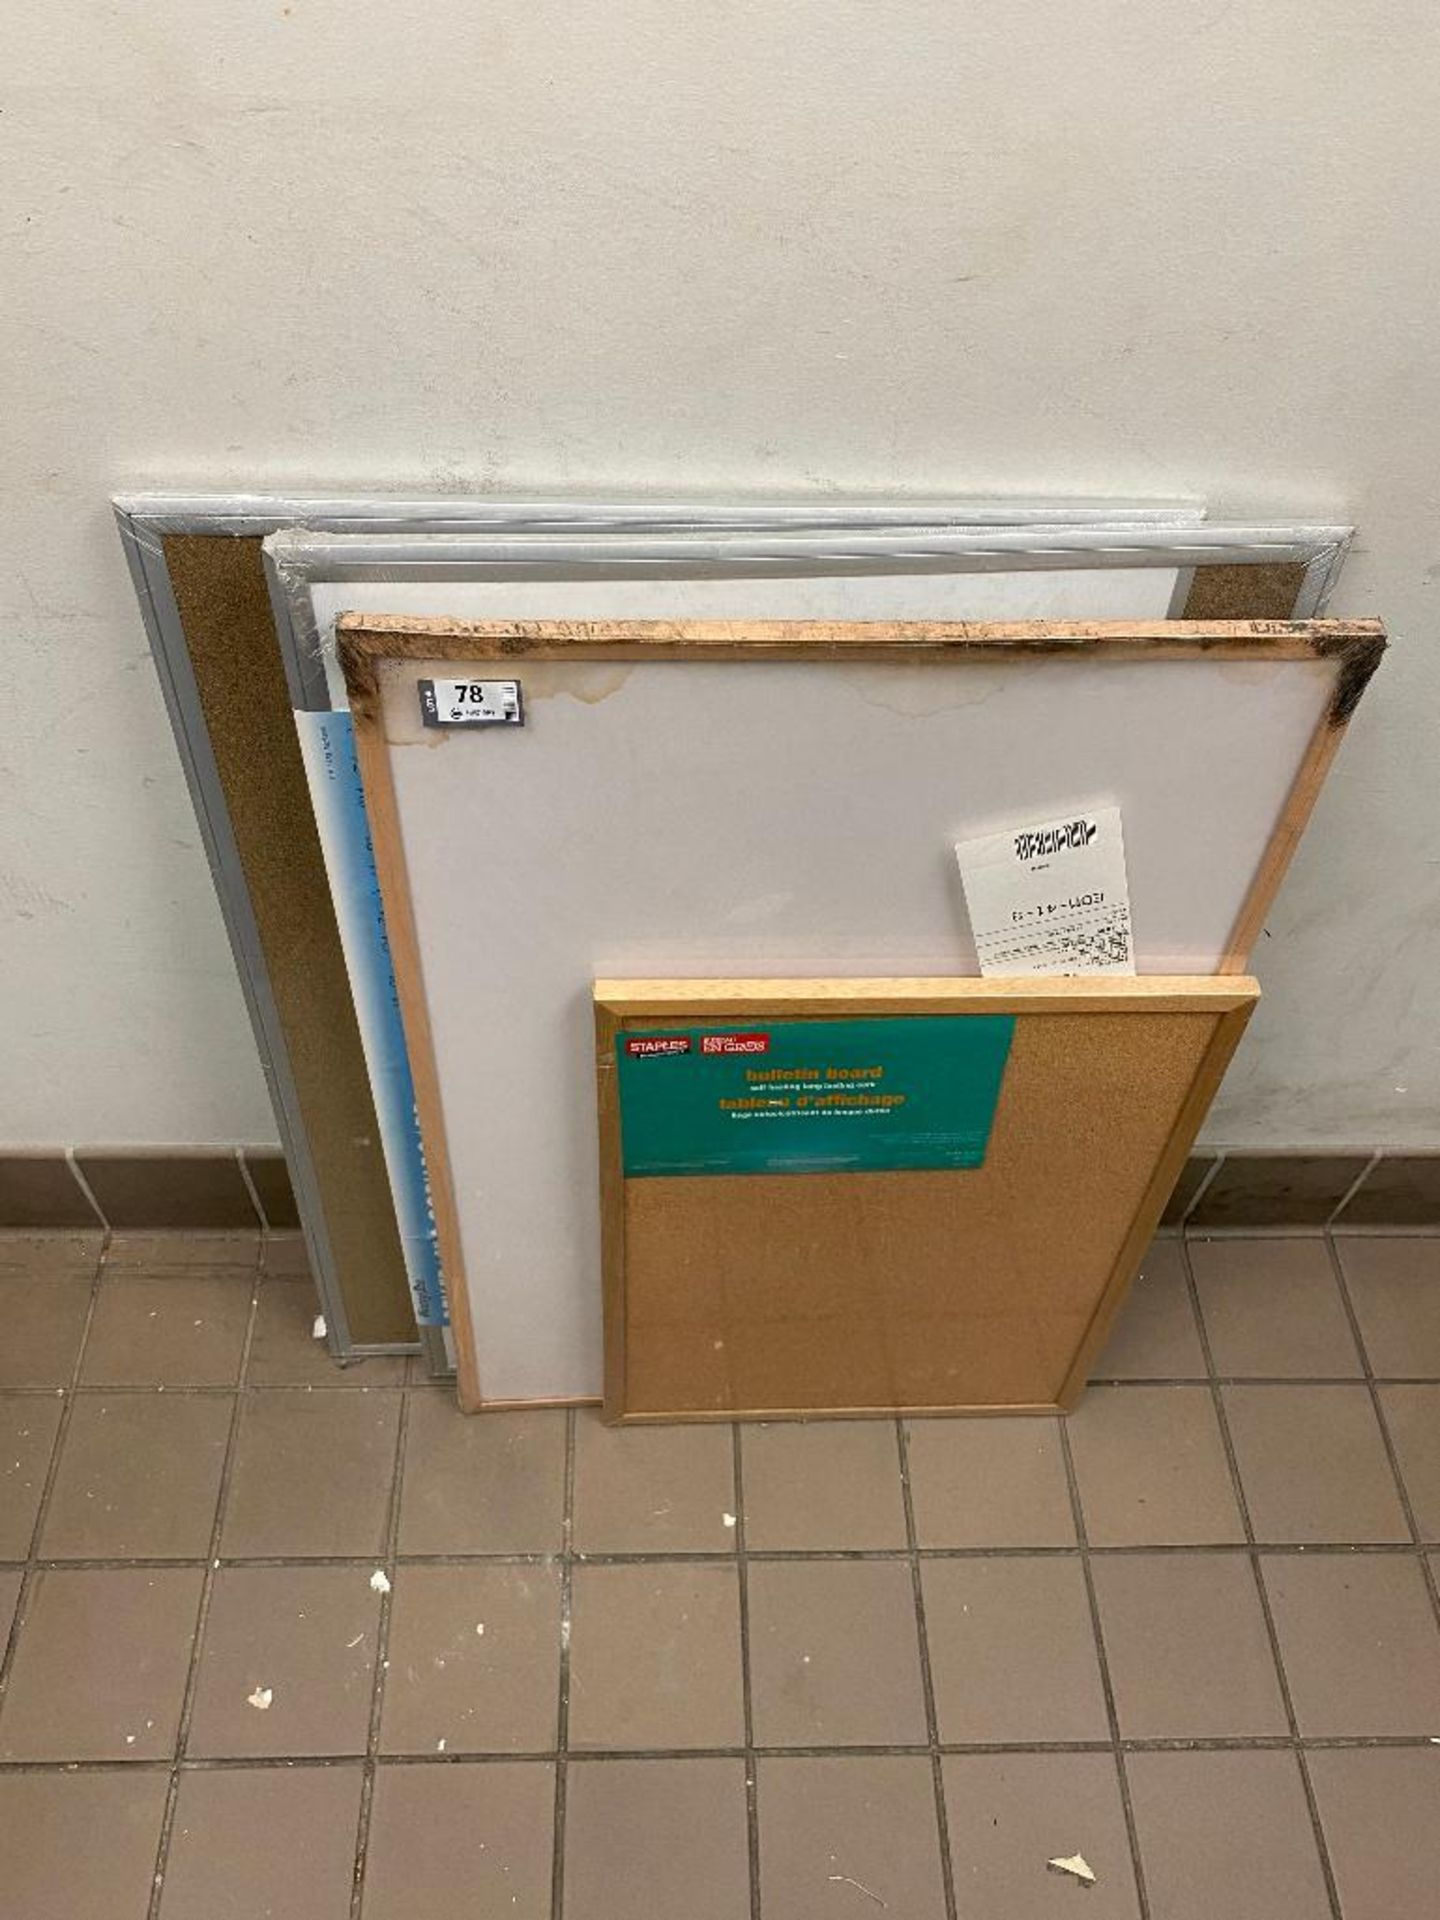 LOT OF (2) NEW WHITEBOARDS & (2) NEW CORKBOARD - Image 2 of 2